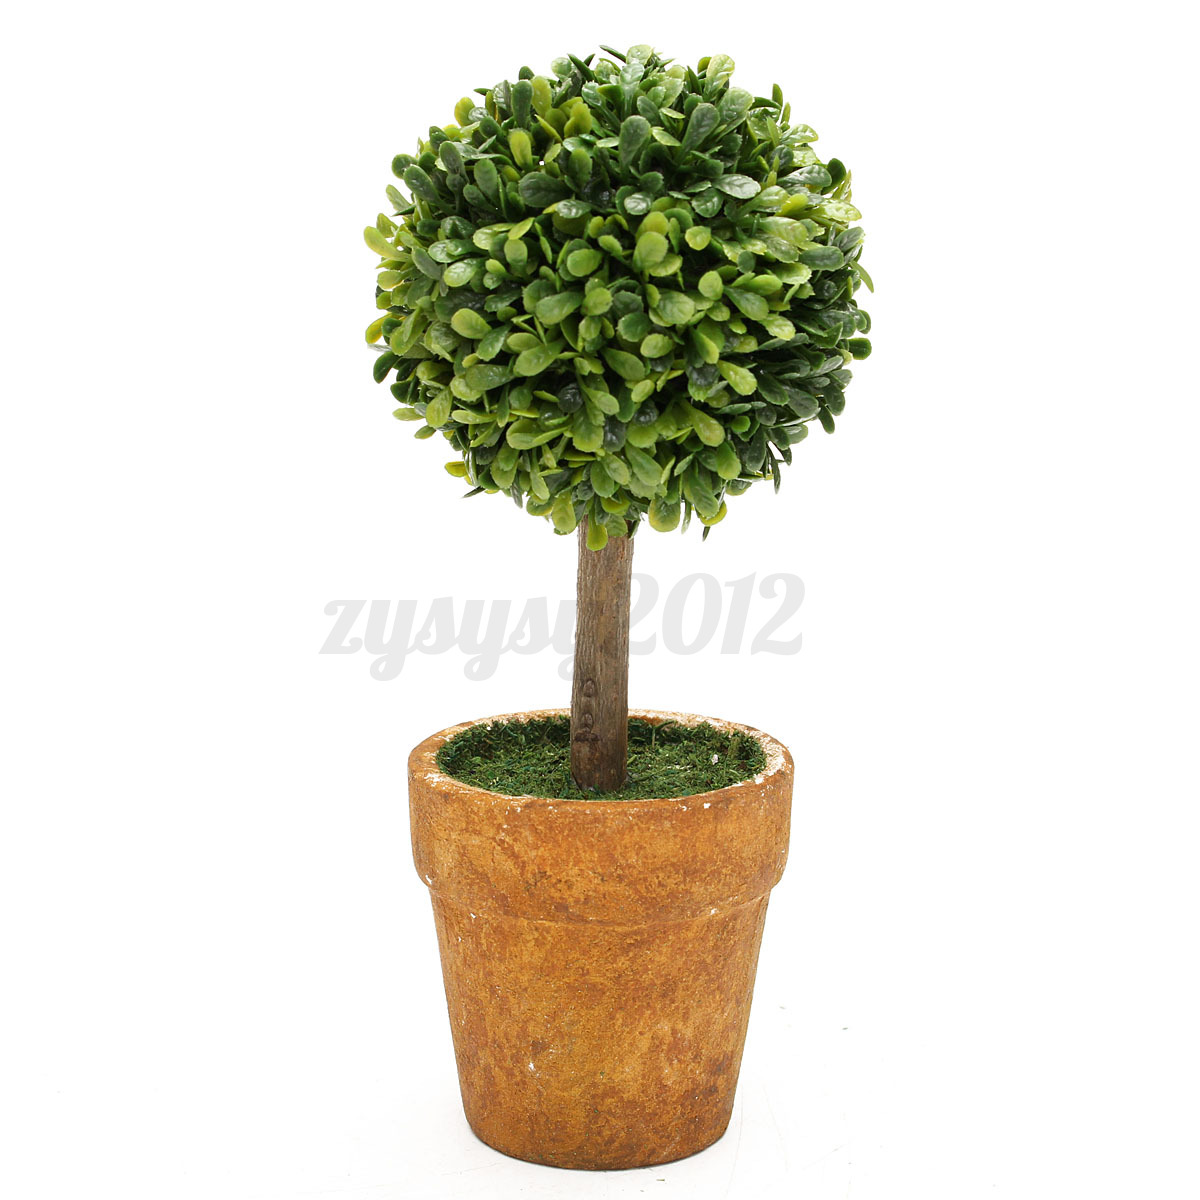 Artificial plastic trees pots plants potted decor garden for Decorating patio with potted plants